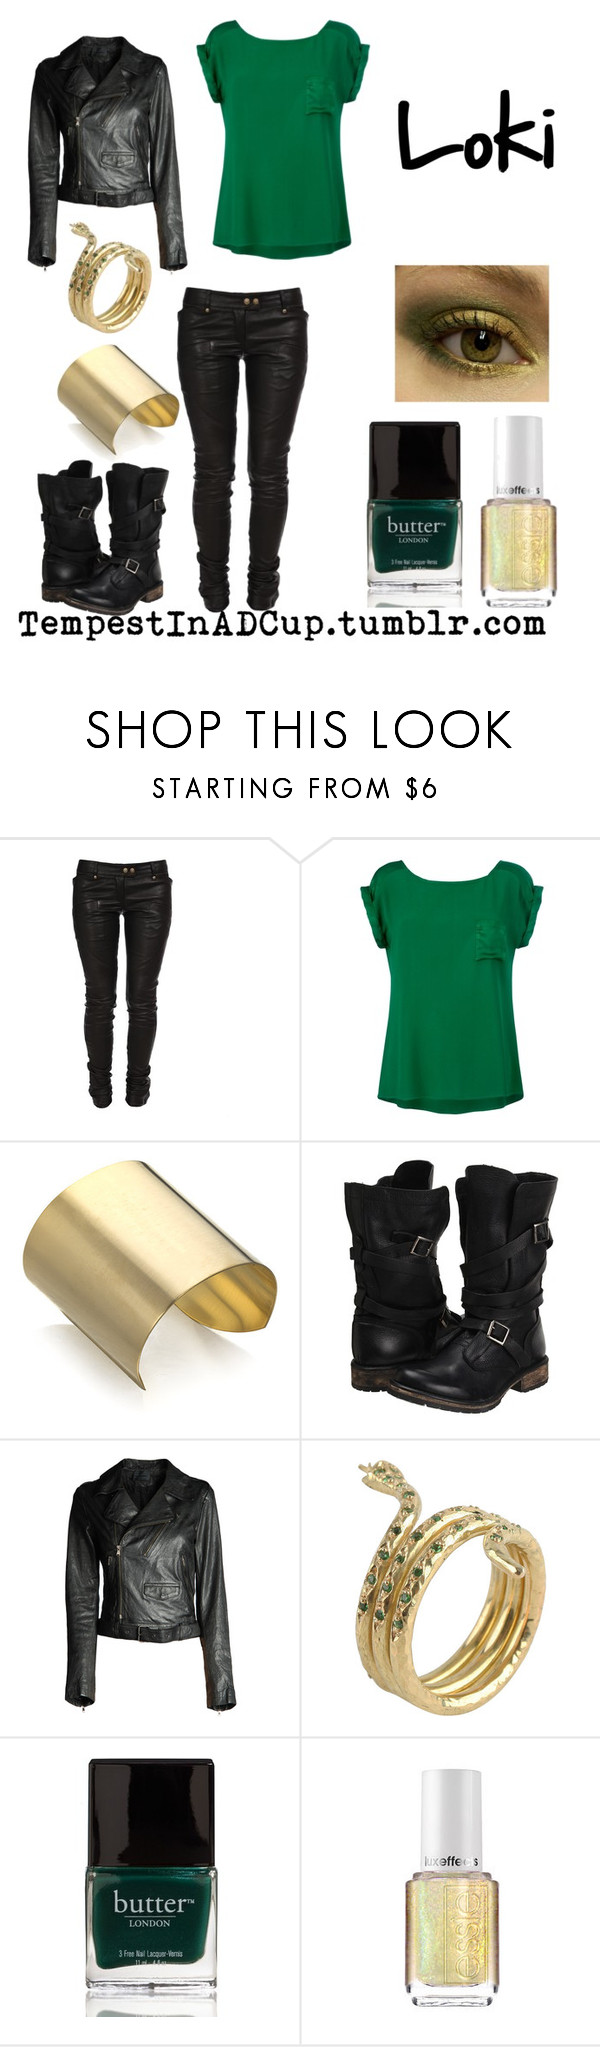 """Loki"" by rubylebeau ❤ liked on Polyvore featuring Balmain, Ghost, Citrine by the Stones, Steve Madden, Diesel Black Gold, Mira, Essie, ruby's comic book inspired outfits and loki"